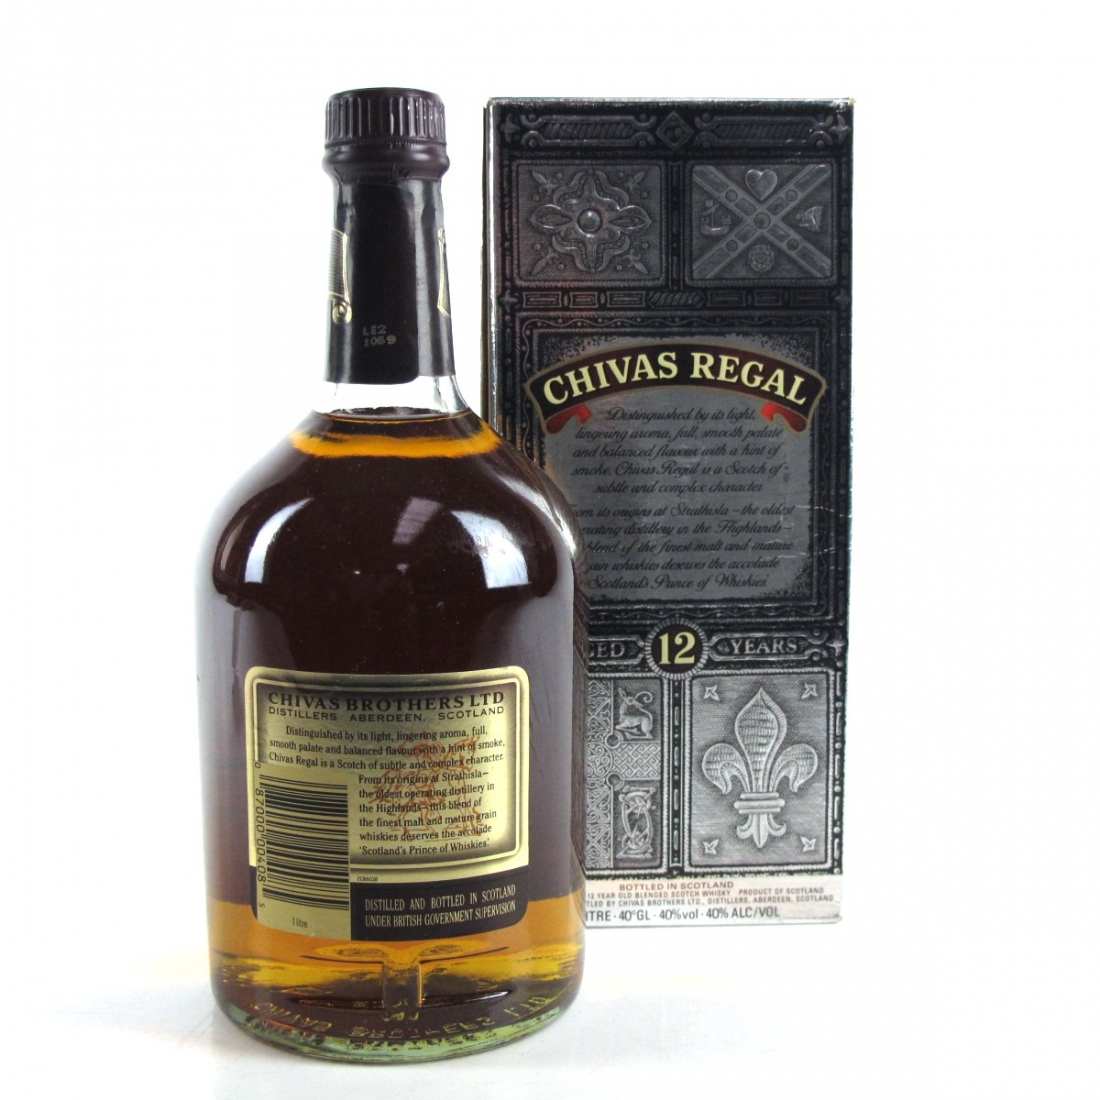 3b36c23c90a Chivas Regal 12 Year Old 1 Litre | Whisky Auctioneer